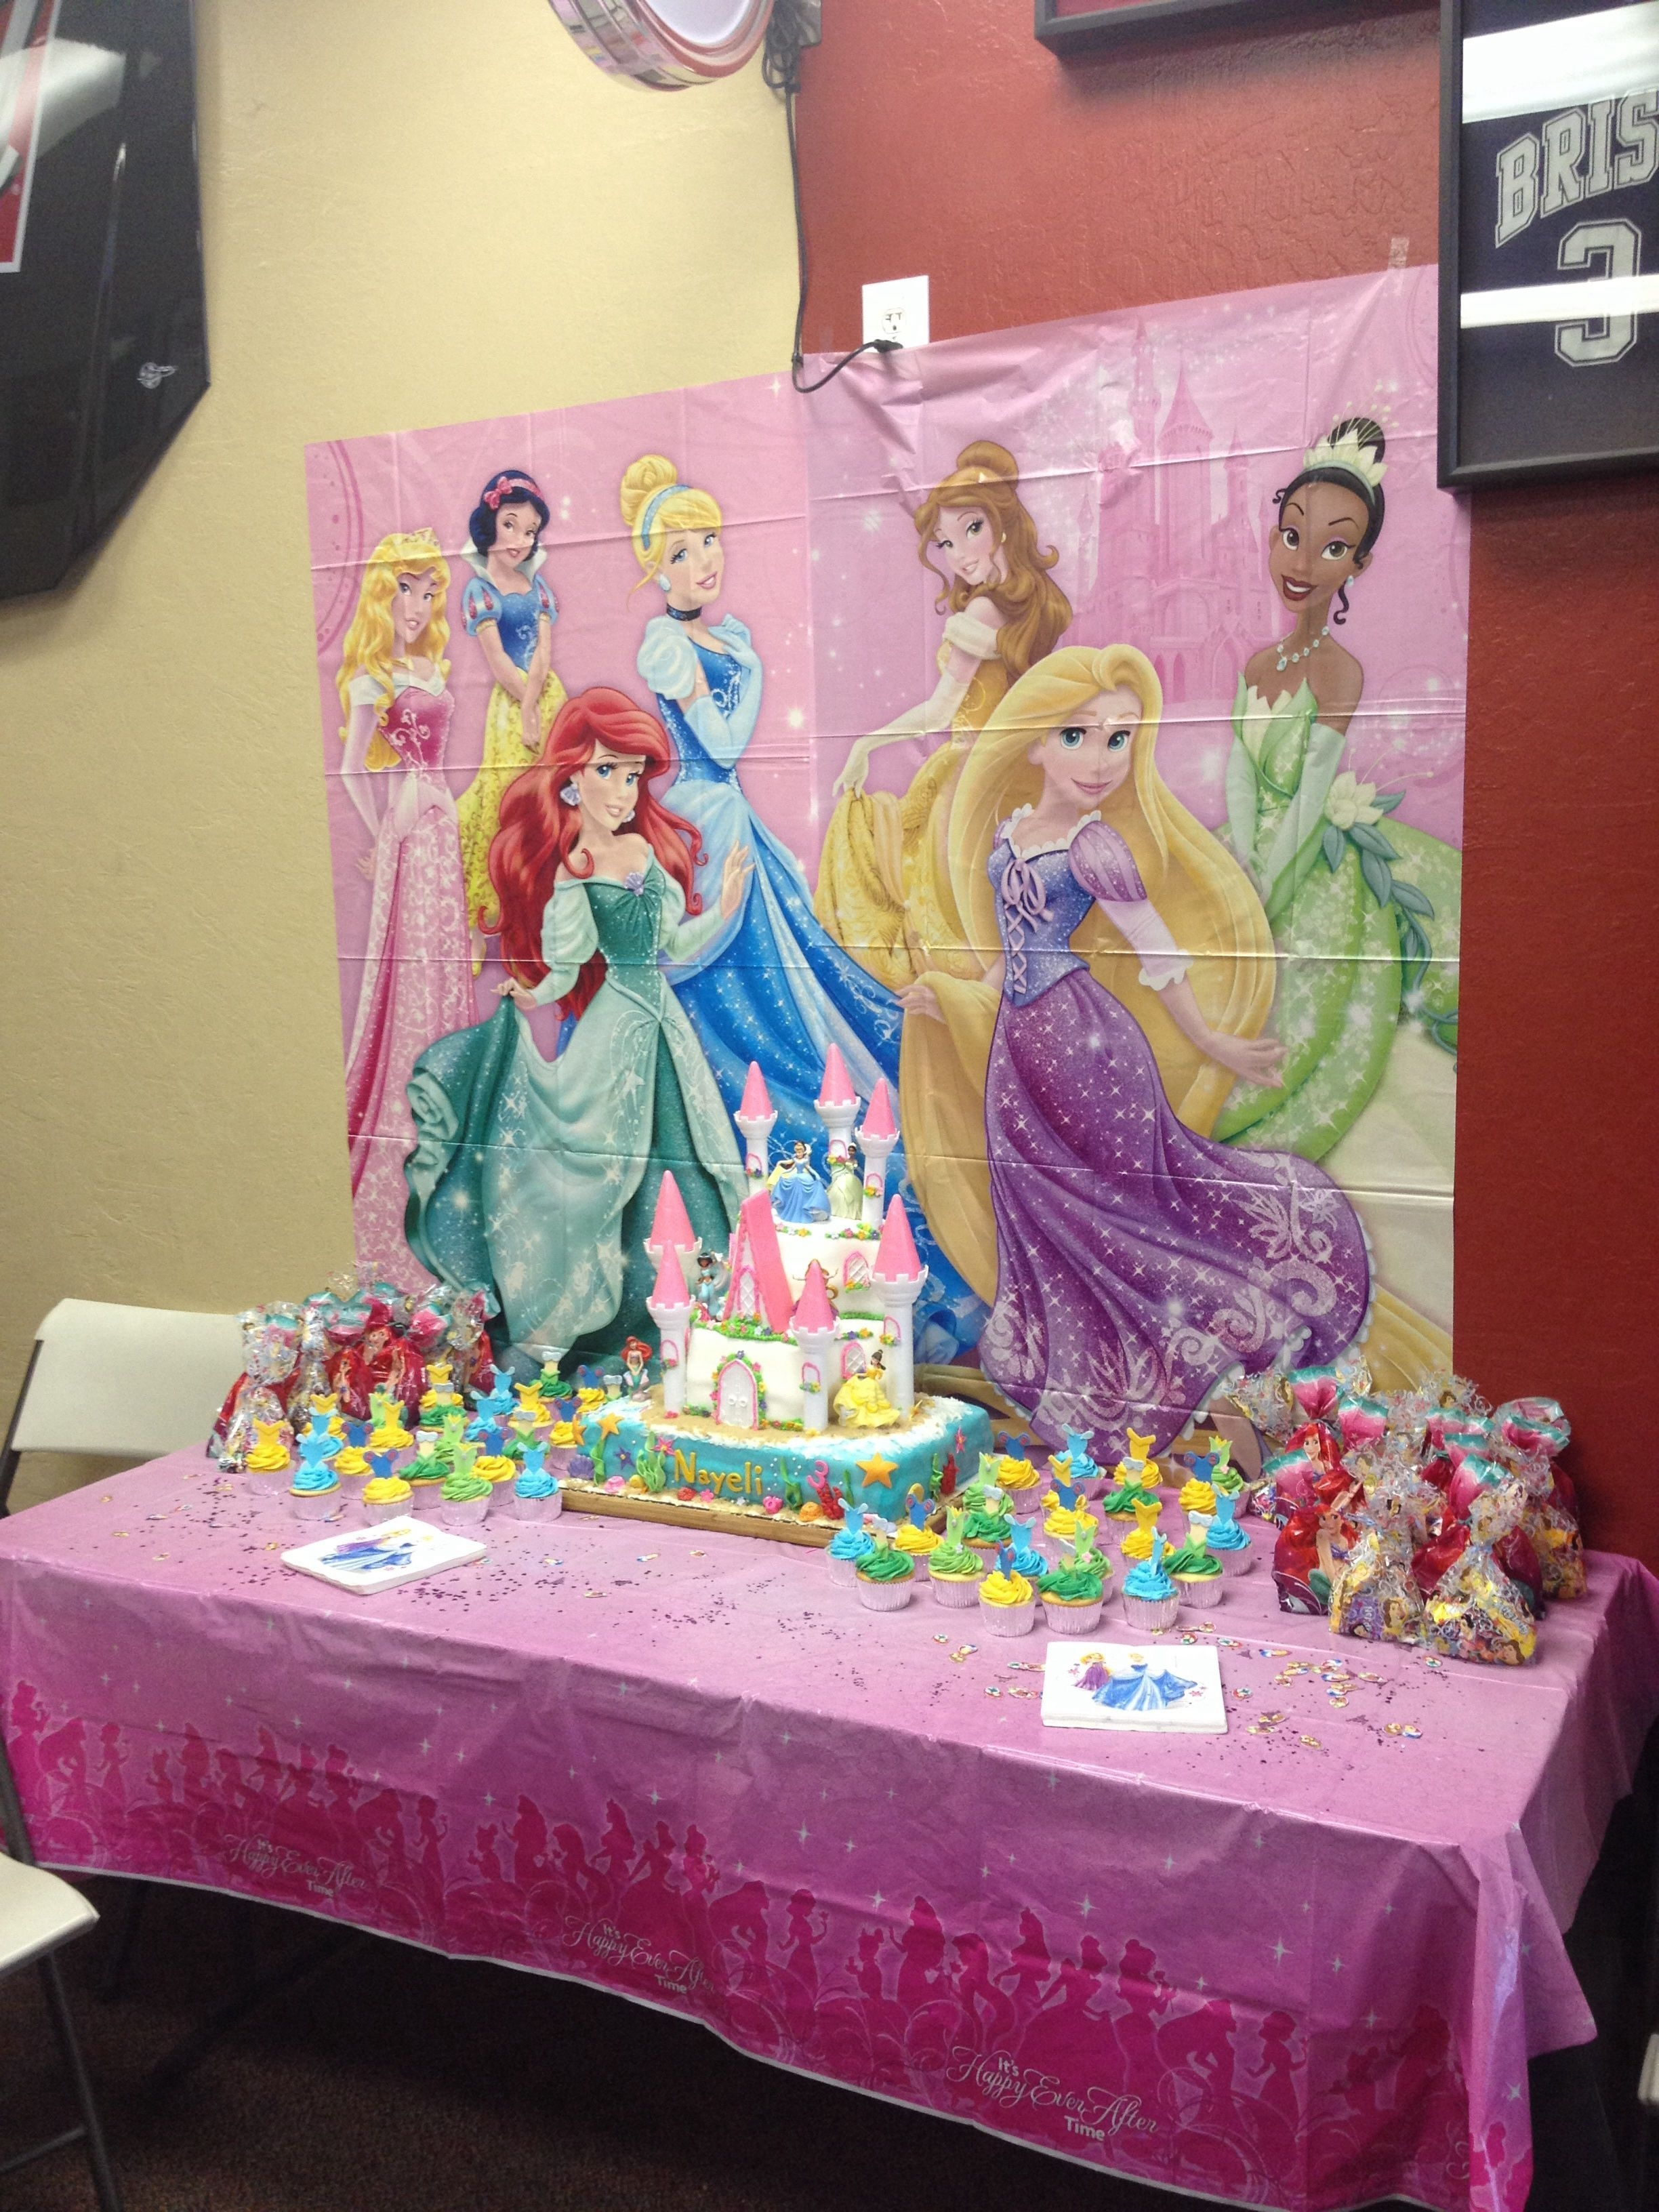 Disney Princess Birthday Cake And Cupcakes I Made For My Daughters 3rd Castle Under The Sea Dress Cupcake Toppers